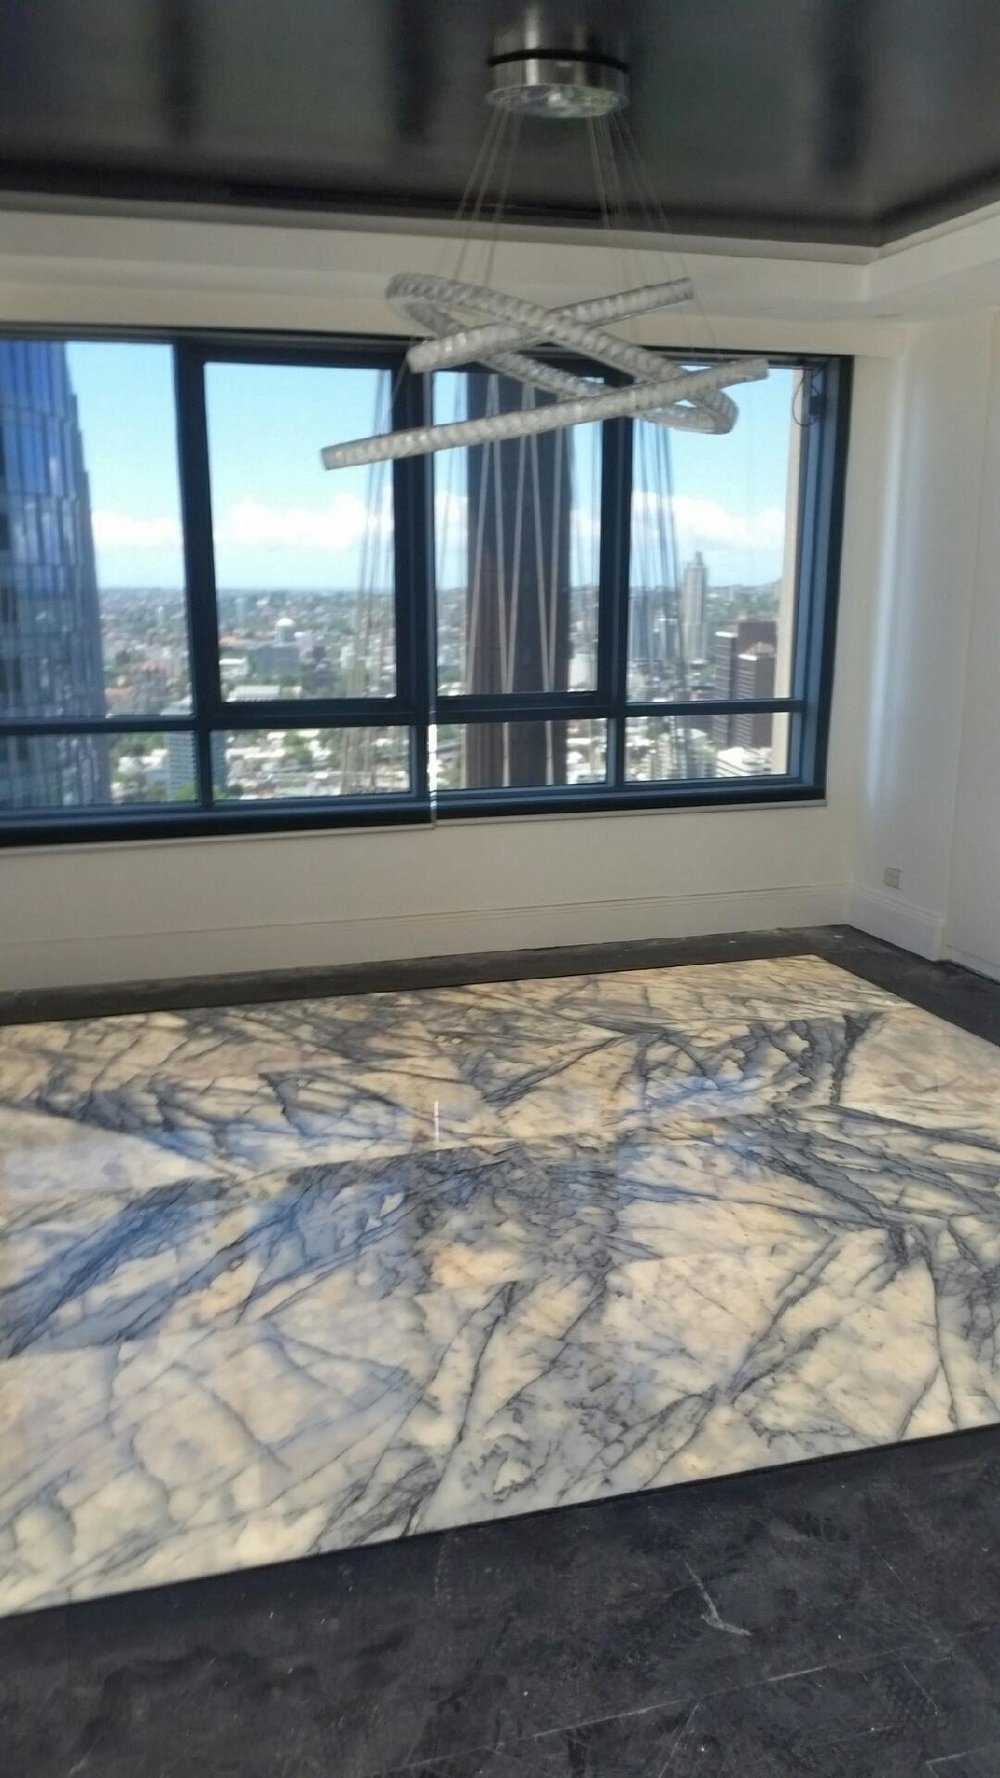 Ever thought of illuminated marble flooring? Here it is. This shows how elegant and versartile our panels can be. Pixalux fact - our panels can take 4-6 tons/sq metre.